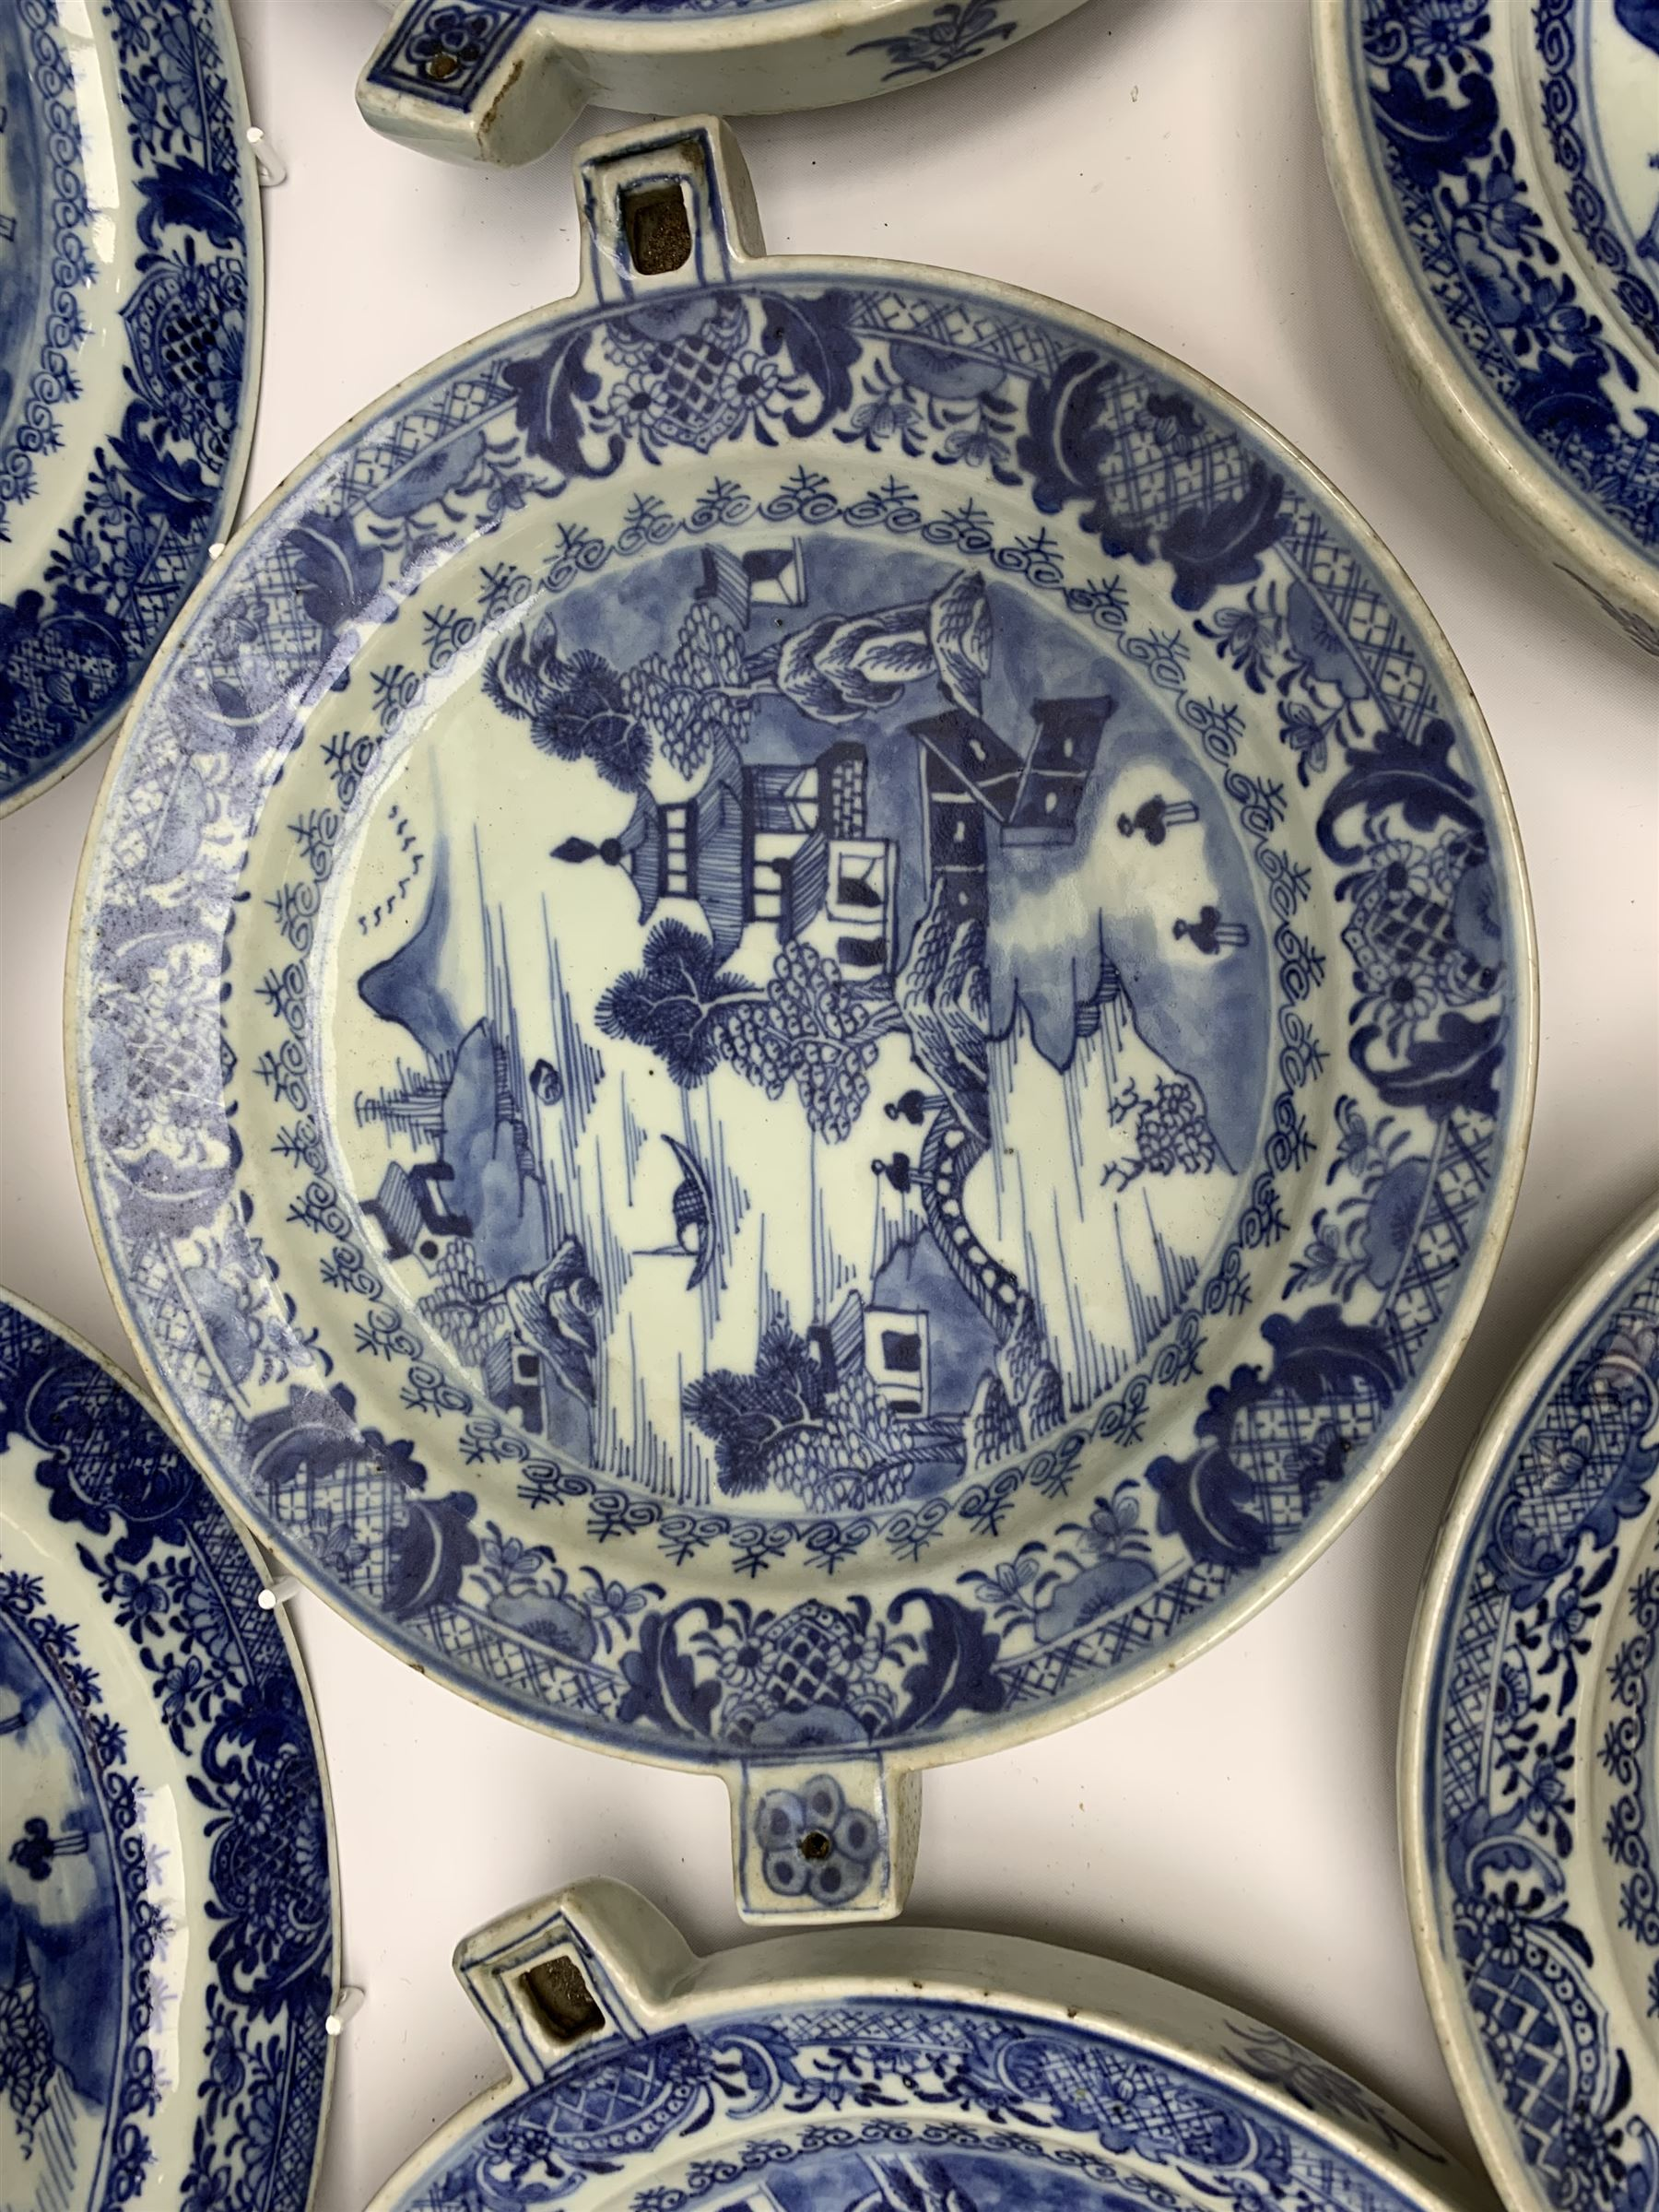 Set of seven late 18th/early 19th century Chinese export blue and white hot water plates - Image 7 of 11